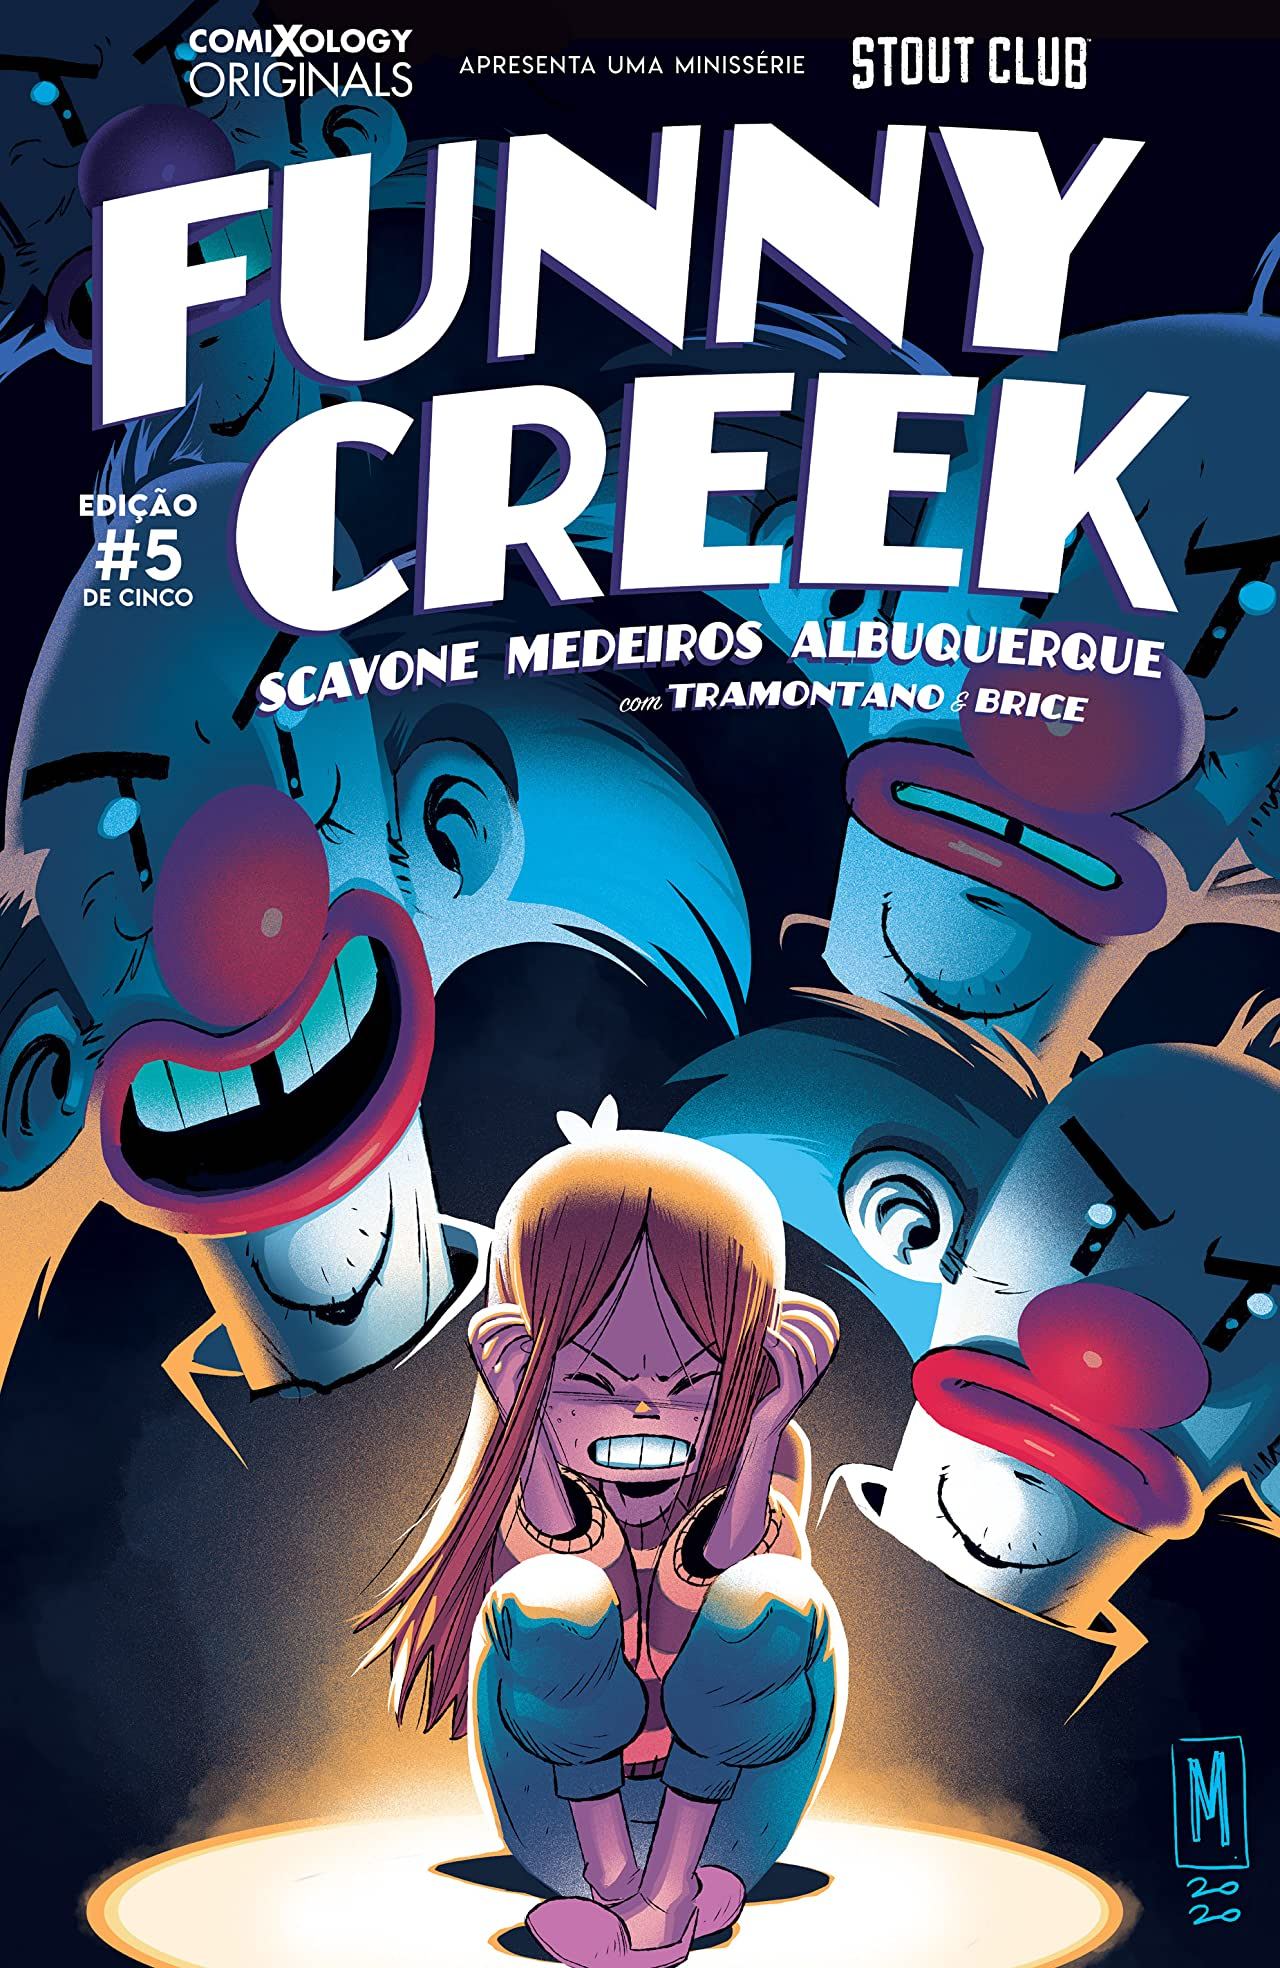 Funny Creek (comiXology Originals) #5 (of 5)